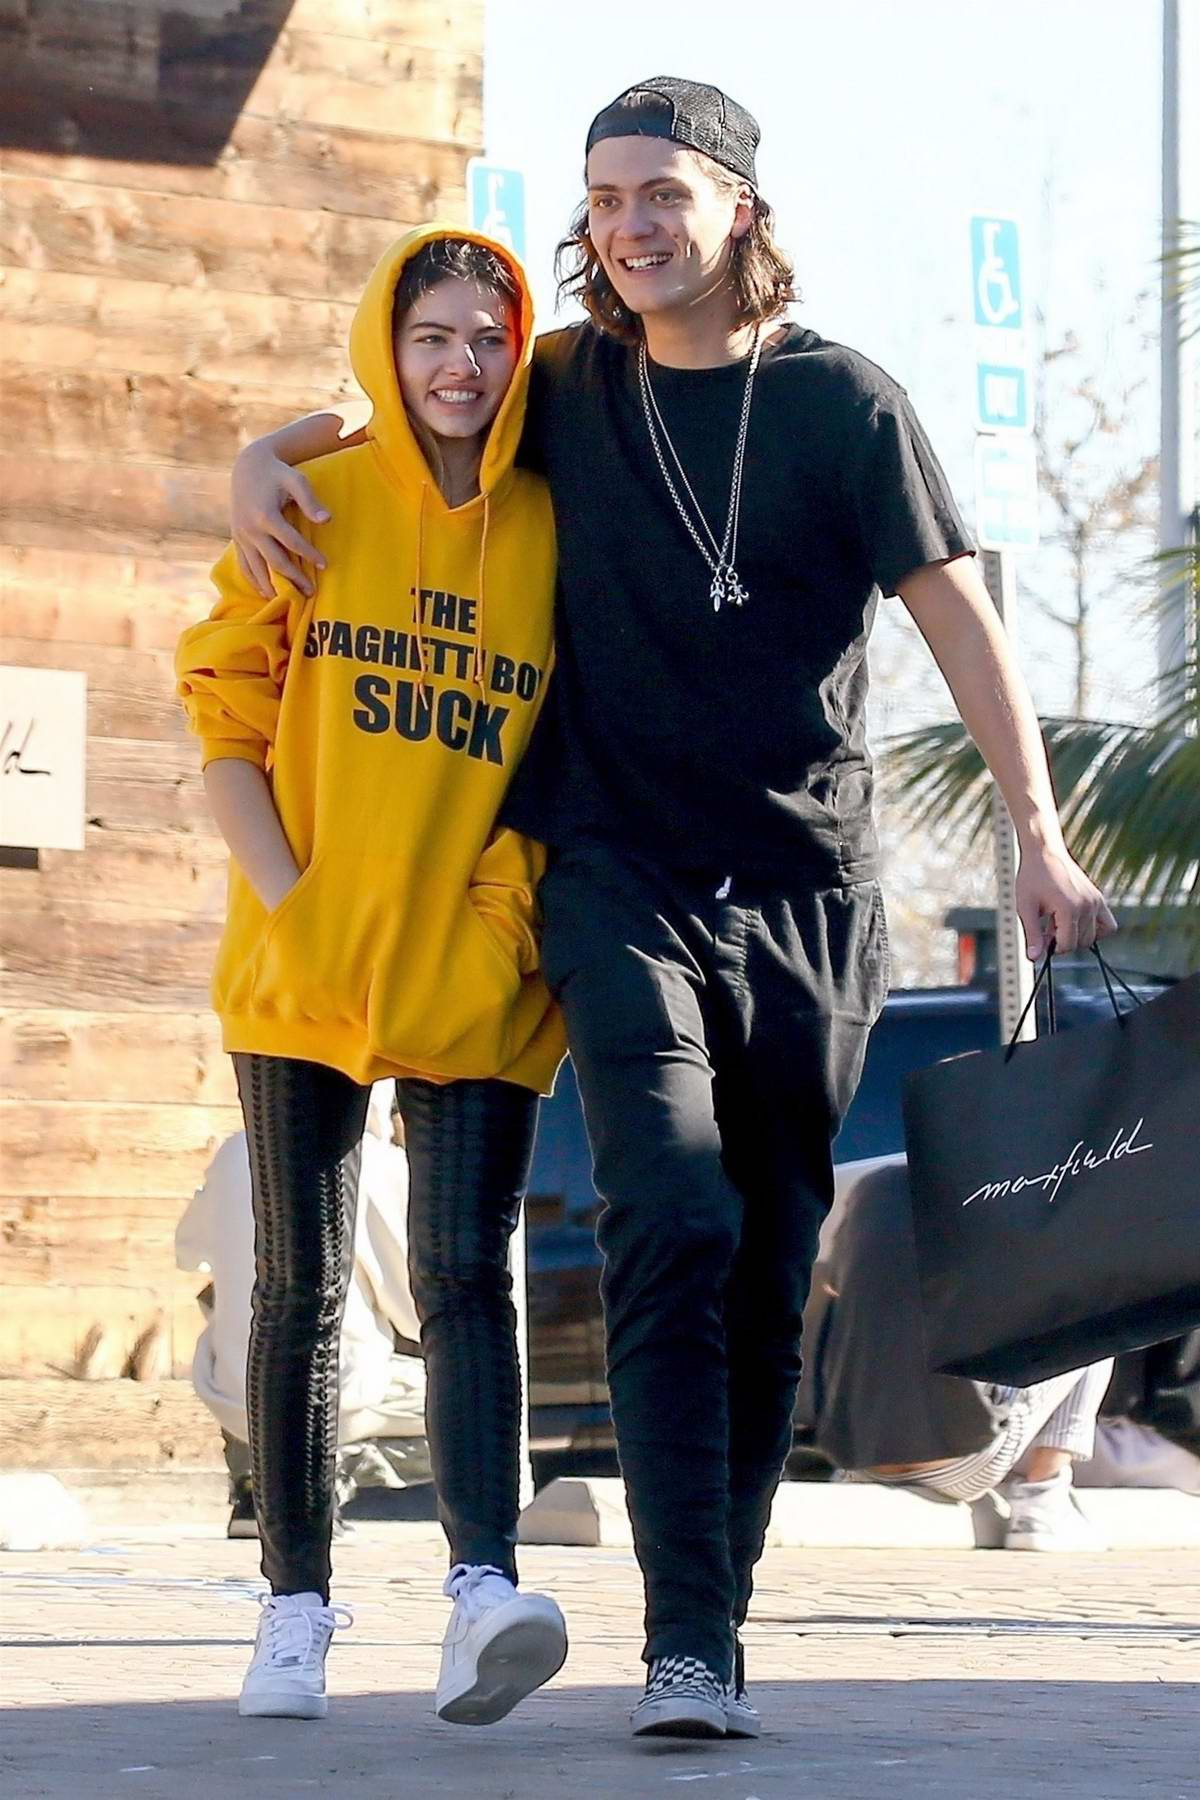 Thylane Blondeau and Milane Meritte enjoy a day at the mall with friends in Malibu, California